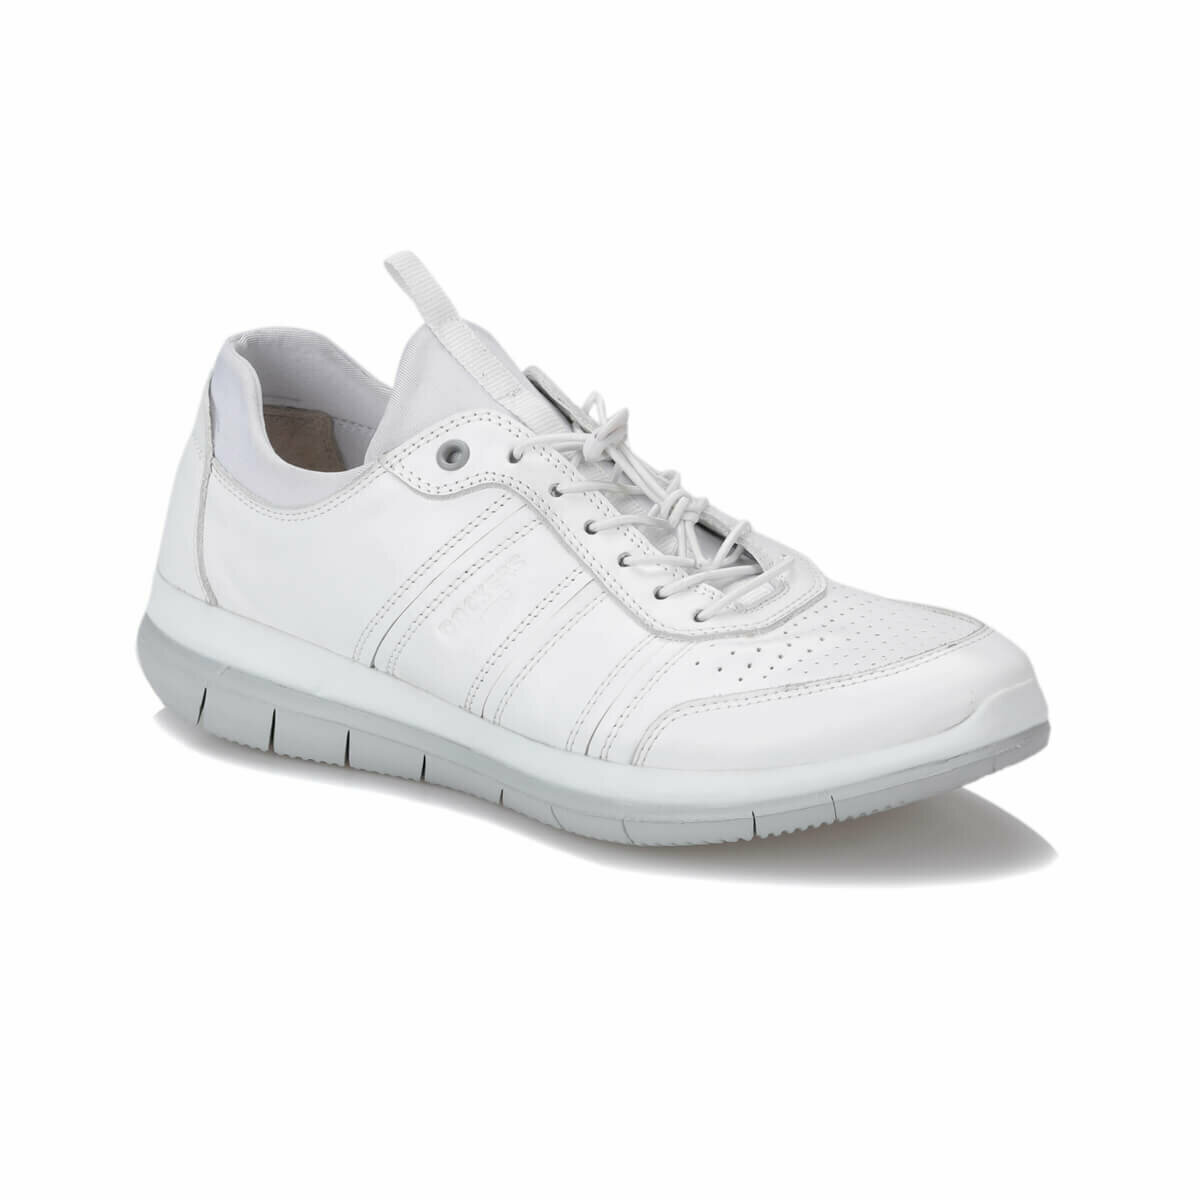 FLO 226166 White Men 'S Sneaker Shoes By Dockers The Gerle